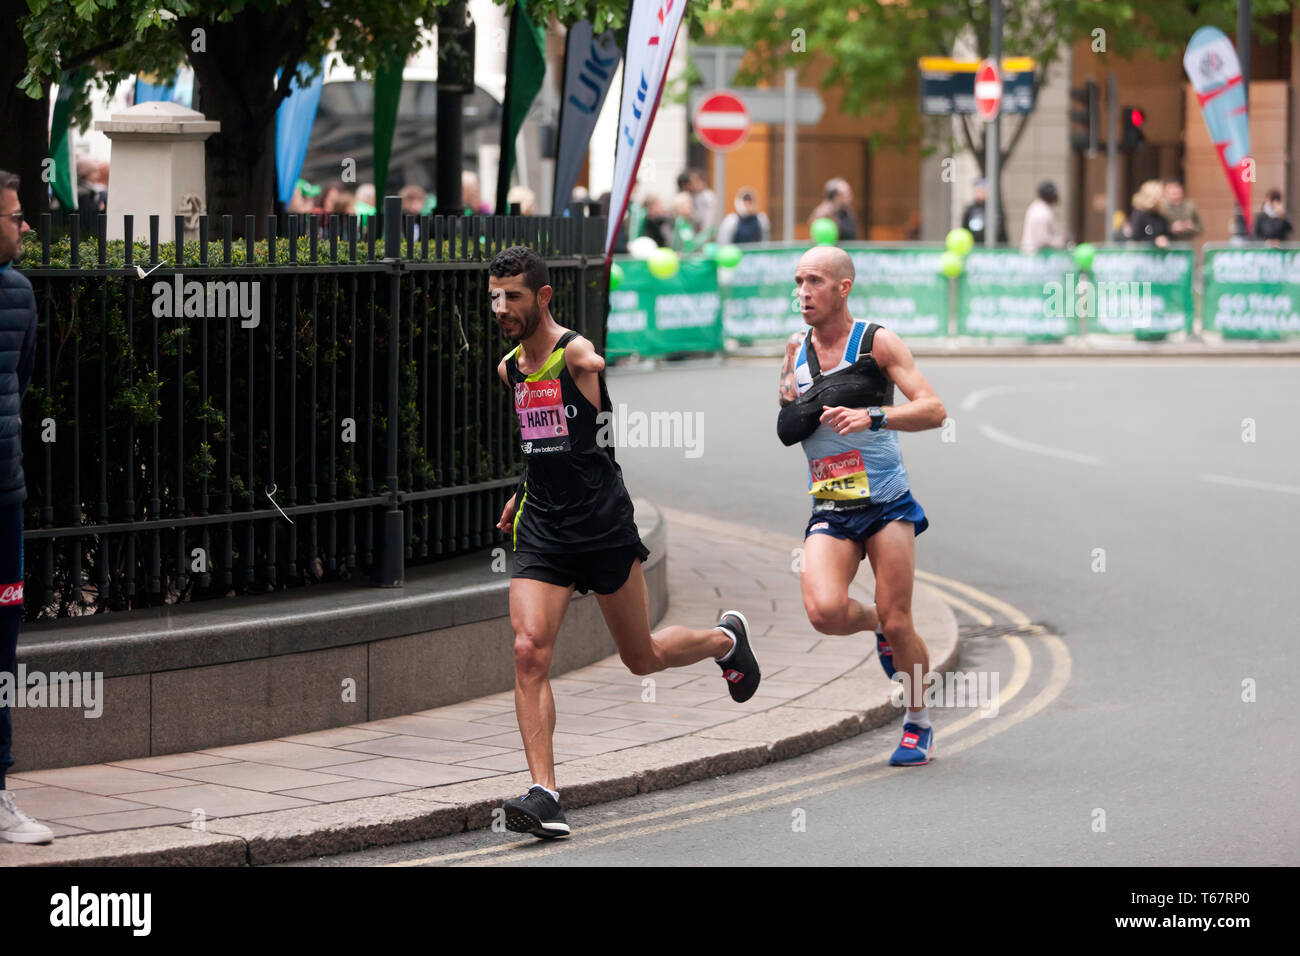 Abdelhadi  El Harti (MAR),  and Derek Rae (GBR), competing in the 2019 London Marathon they went on to finish 7th and 5th in times of 02:30:44 and 02:27:08 respectively. (3rd and 2nd in the T45/46 Category) Stock Photo